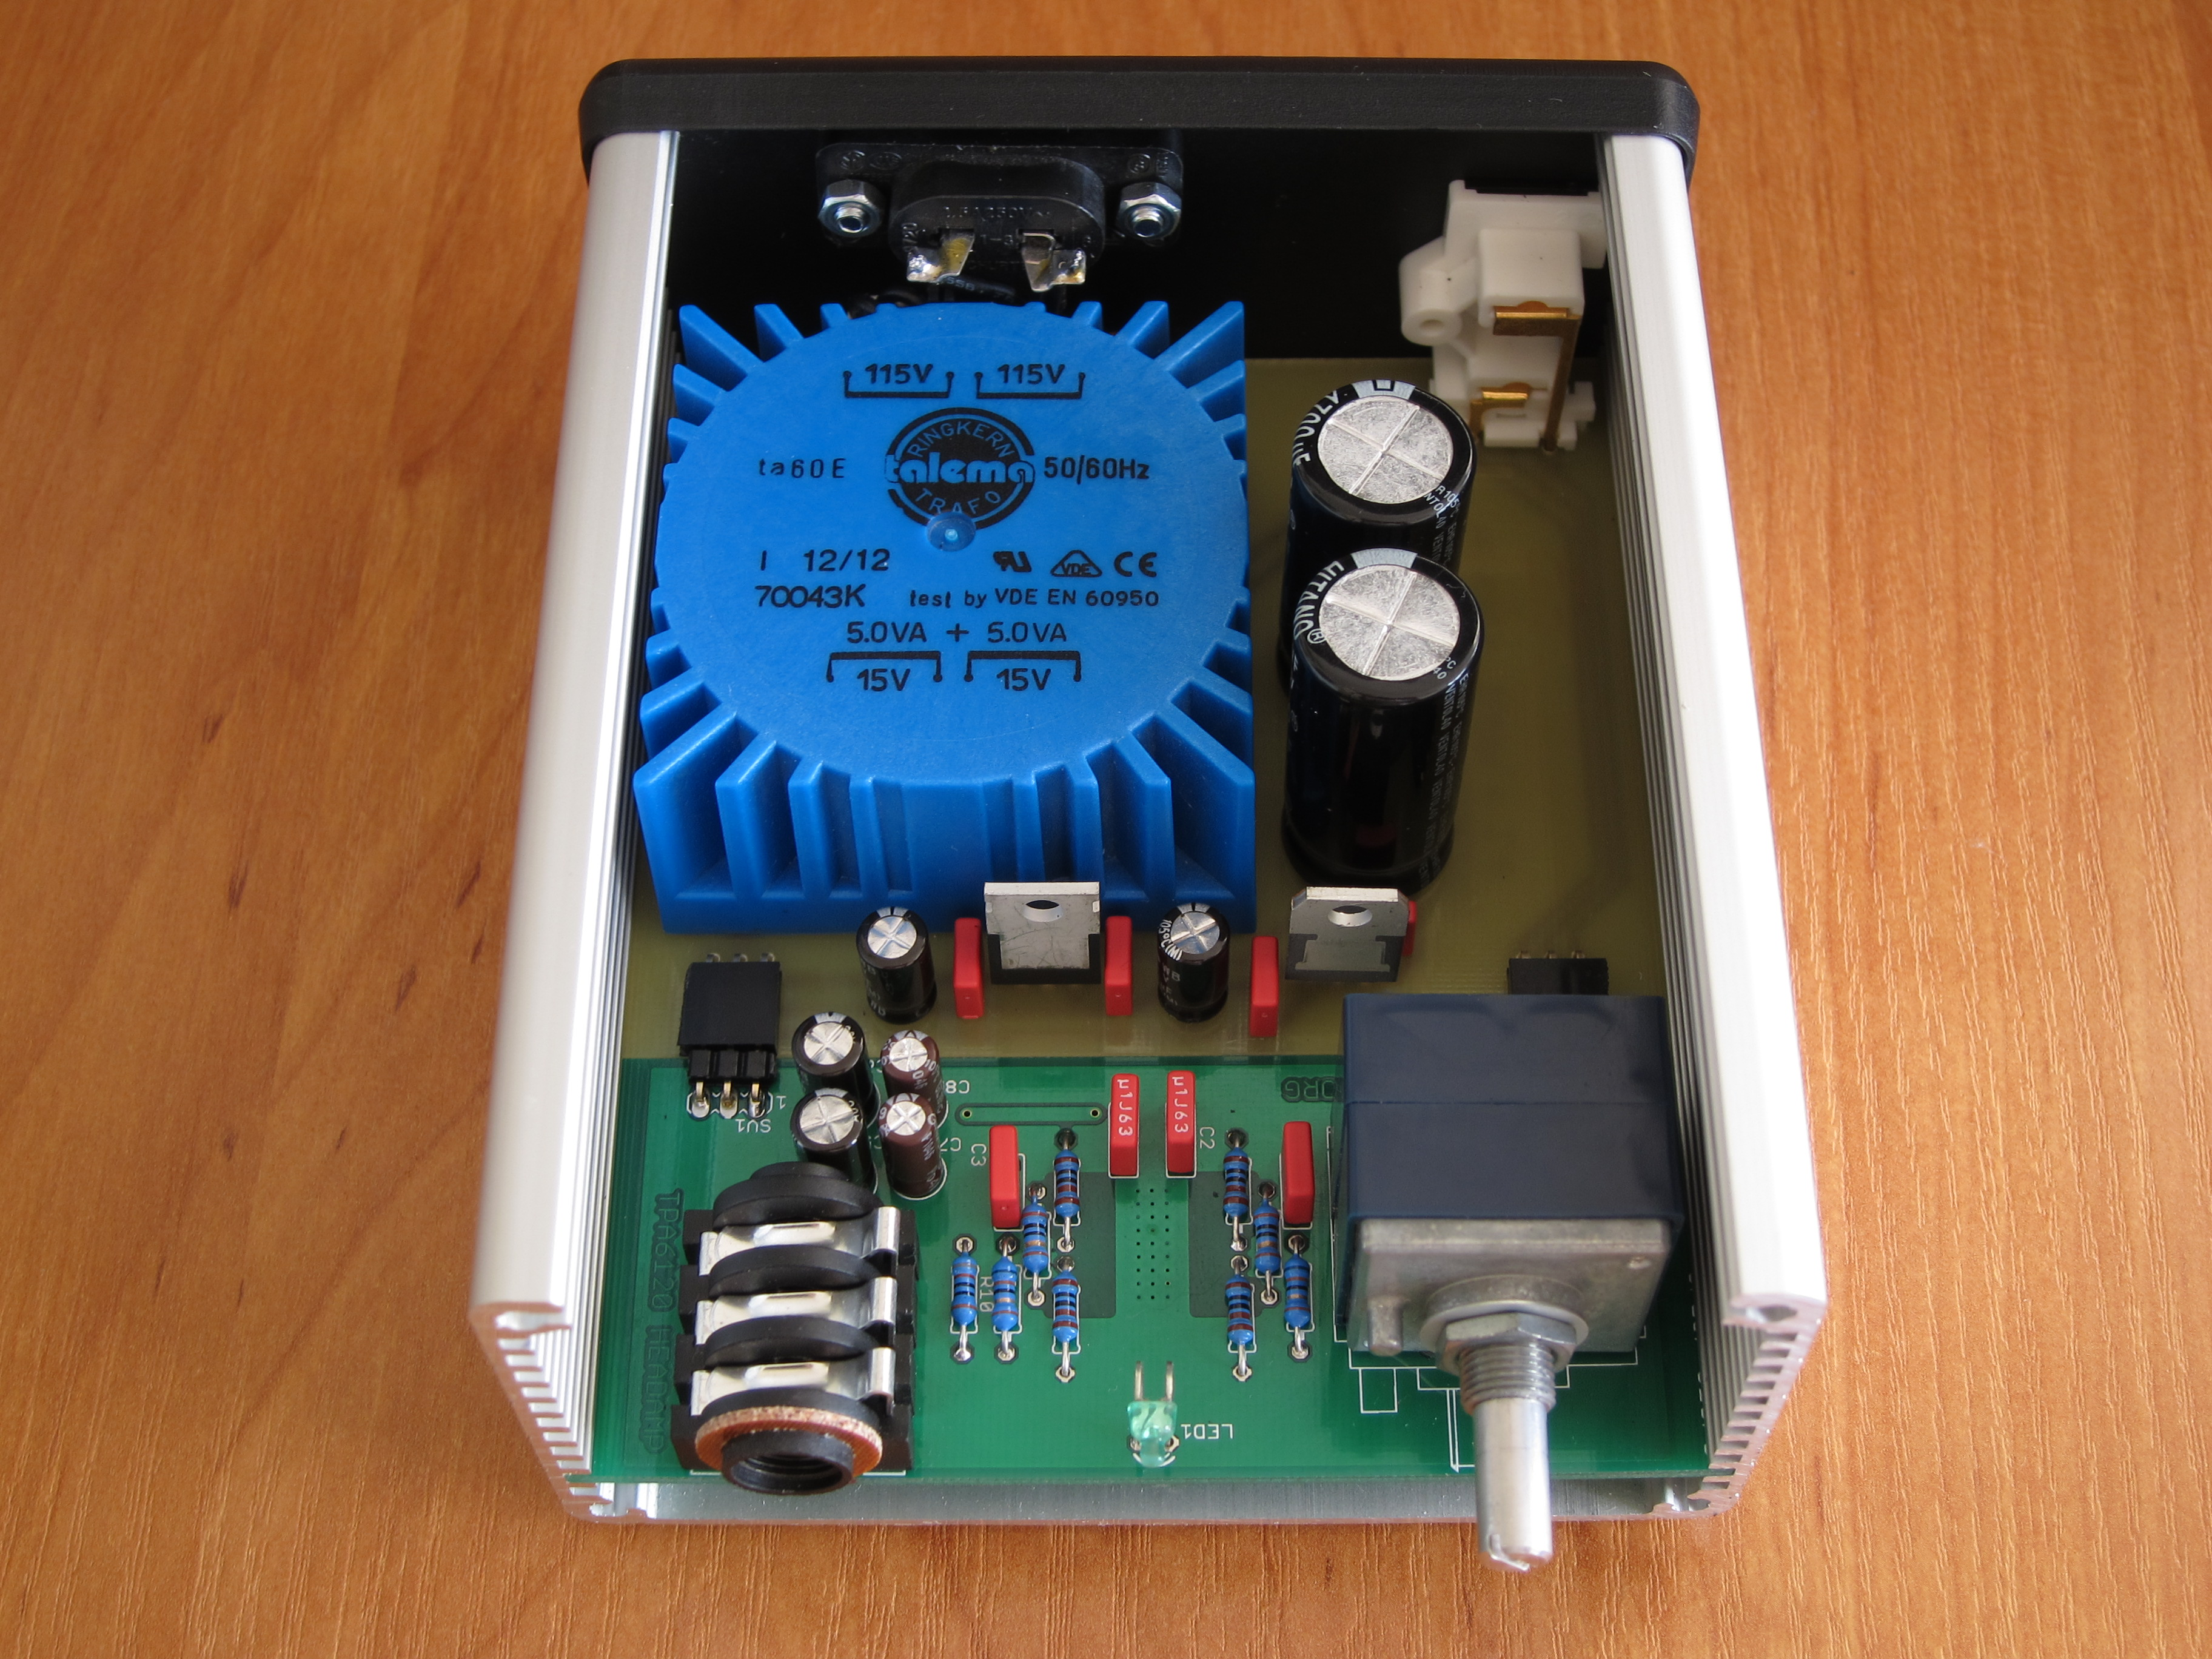 A06b 6096 H207 besides 3v Battery Powered Stereo  lifier Circuit Tda2822m further En index additionally Arm Cortex Lpc 2148 Based Motor Speed Control 47019331 besides 74 Series digital circuit of 74192,74L192 preset BCD decimal synchronous reversible counterdual clock with clear. on dual power supply circuit